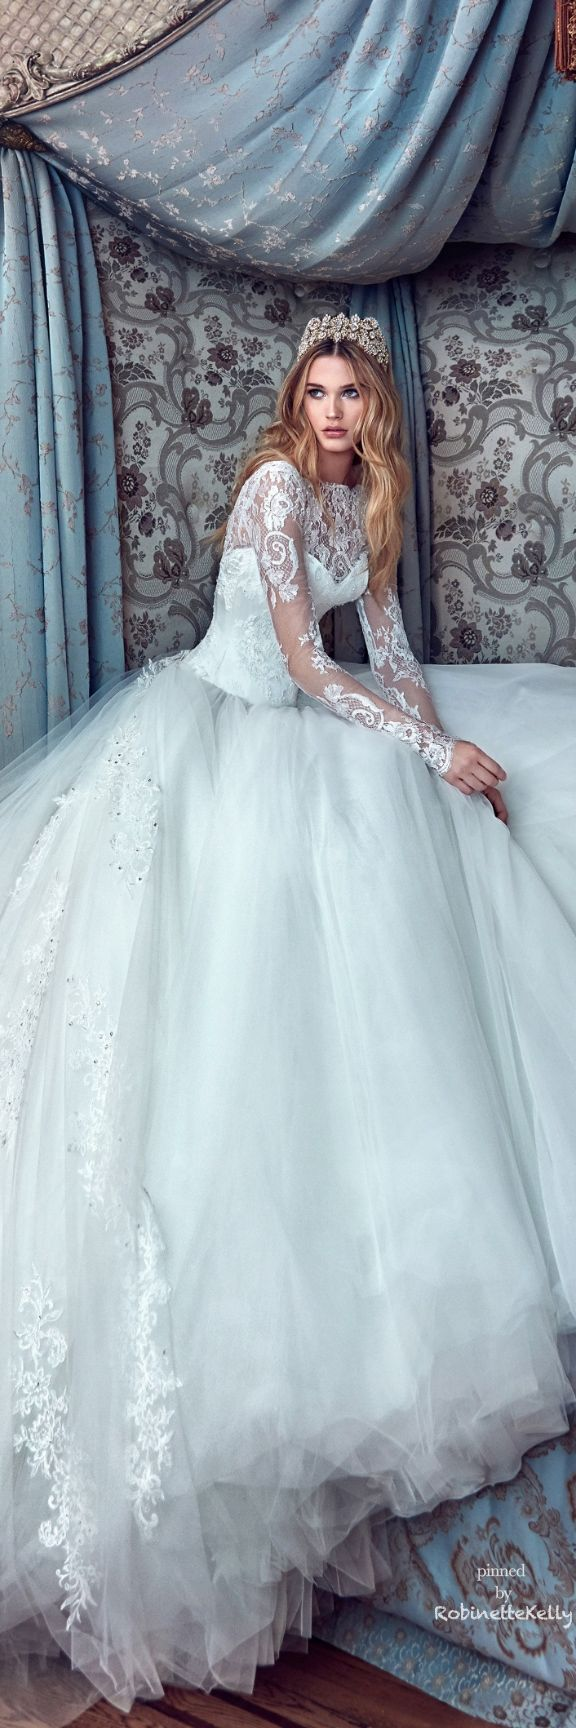 queen wedding dresses best 25 royal wedding dresses ideas on royal 6933